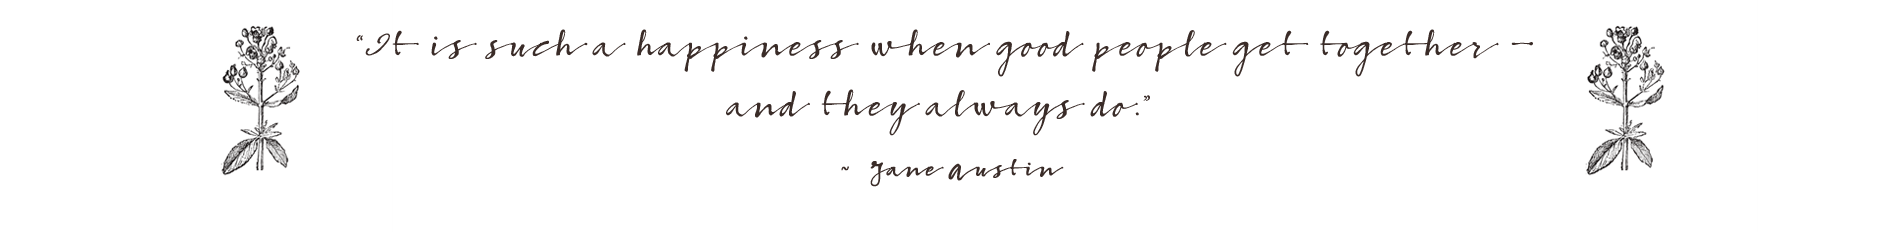 It is such a happiness when good people get together - and they always do. Jane Austin.